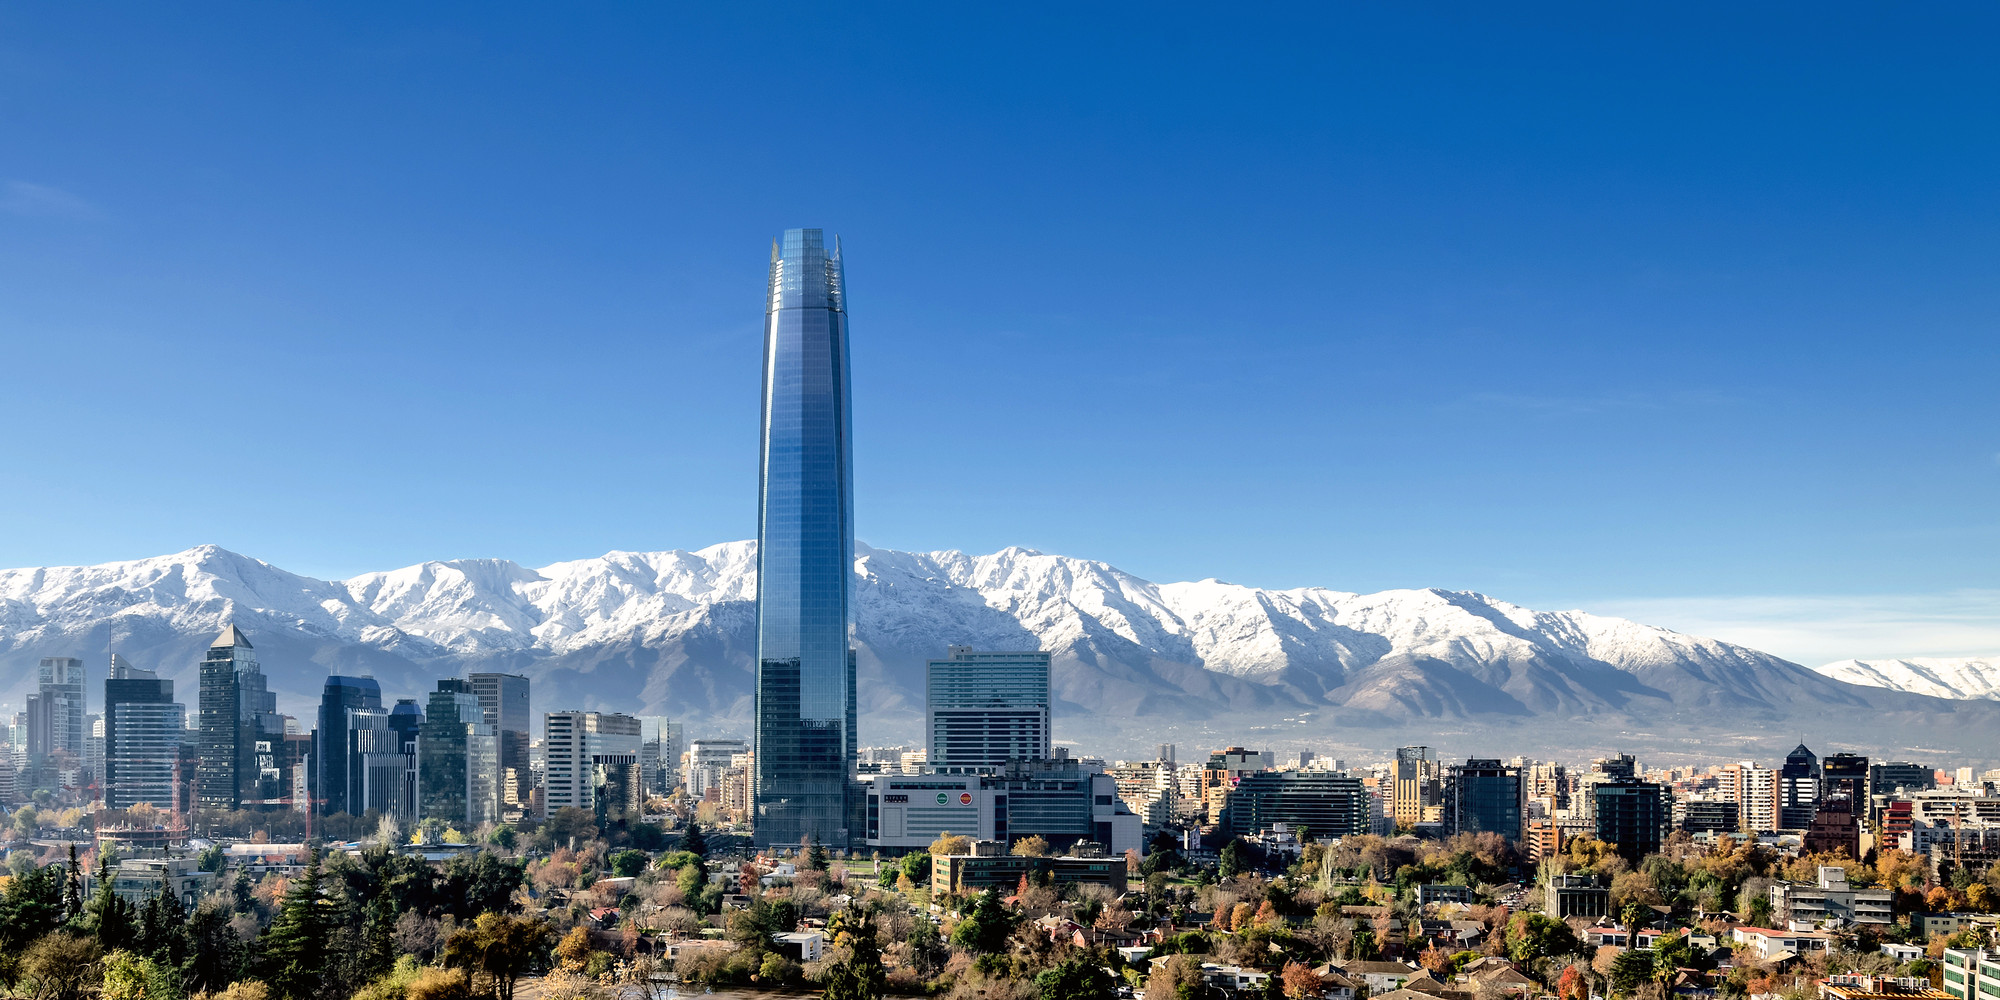 13 New Buildings Join the World's 100 Tallest List in Record-Breaking Year,  2014